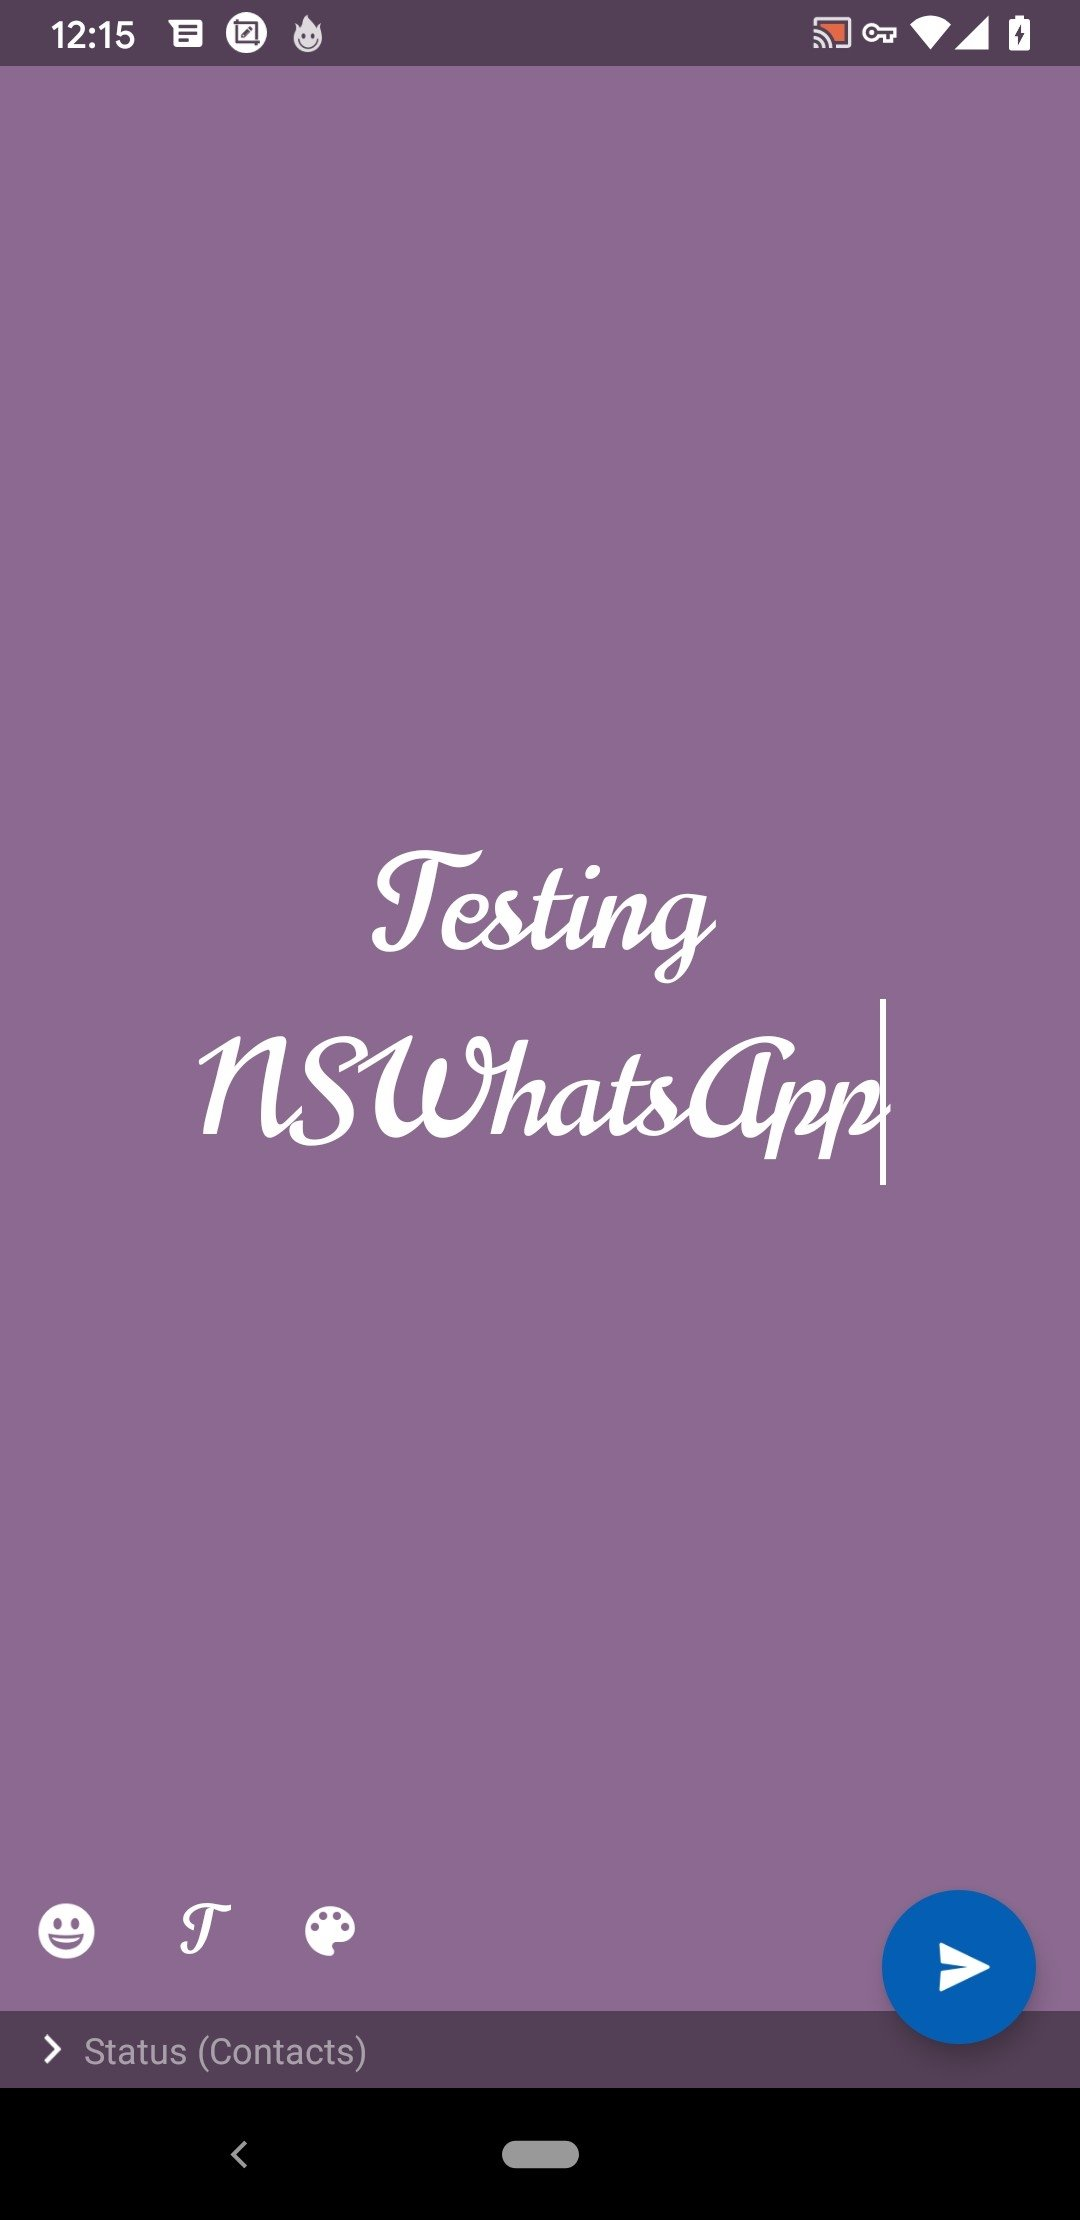 NSWhatsApp 3D 7 99 - Download for Android APK Free